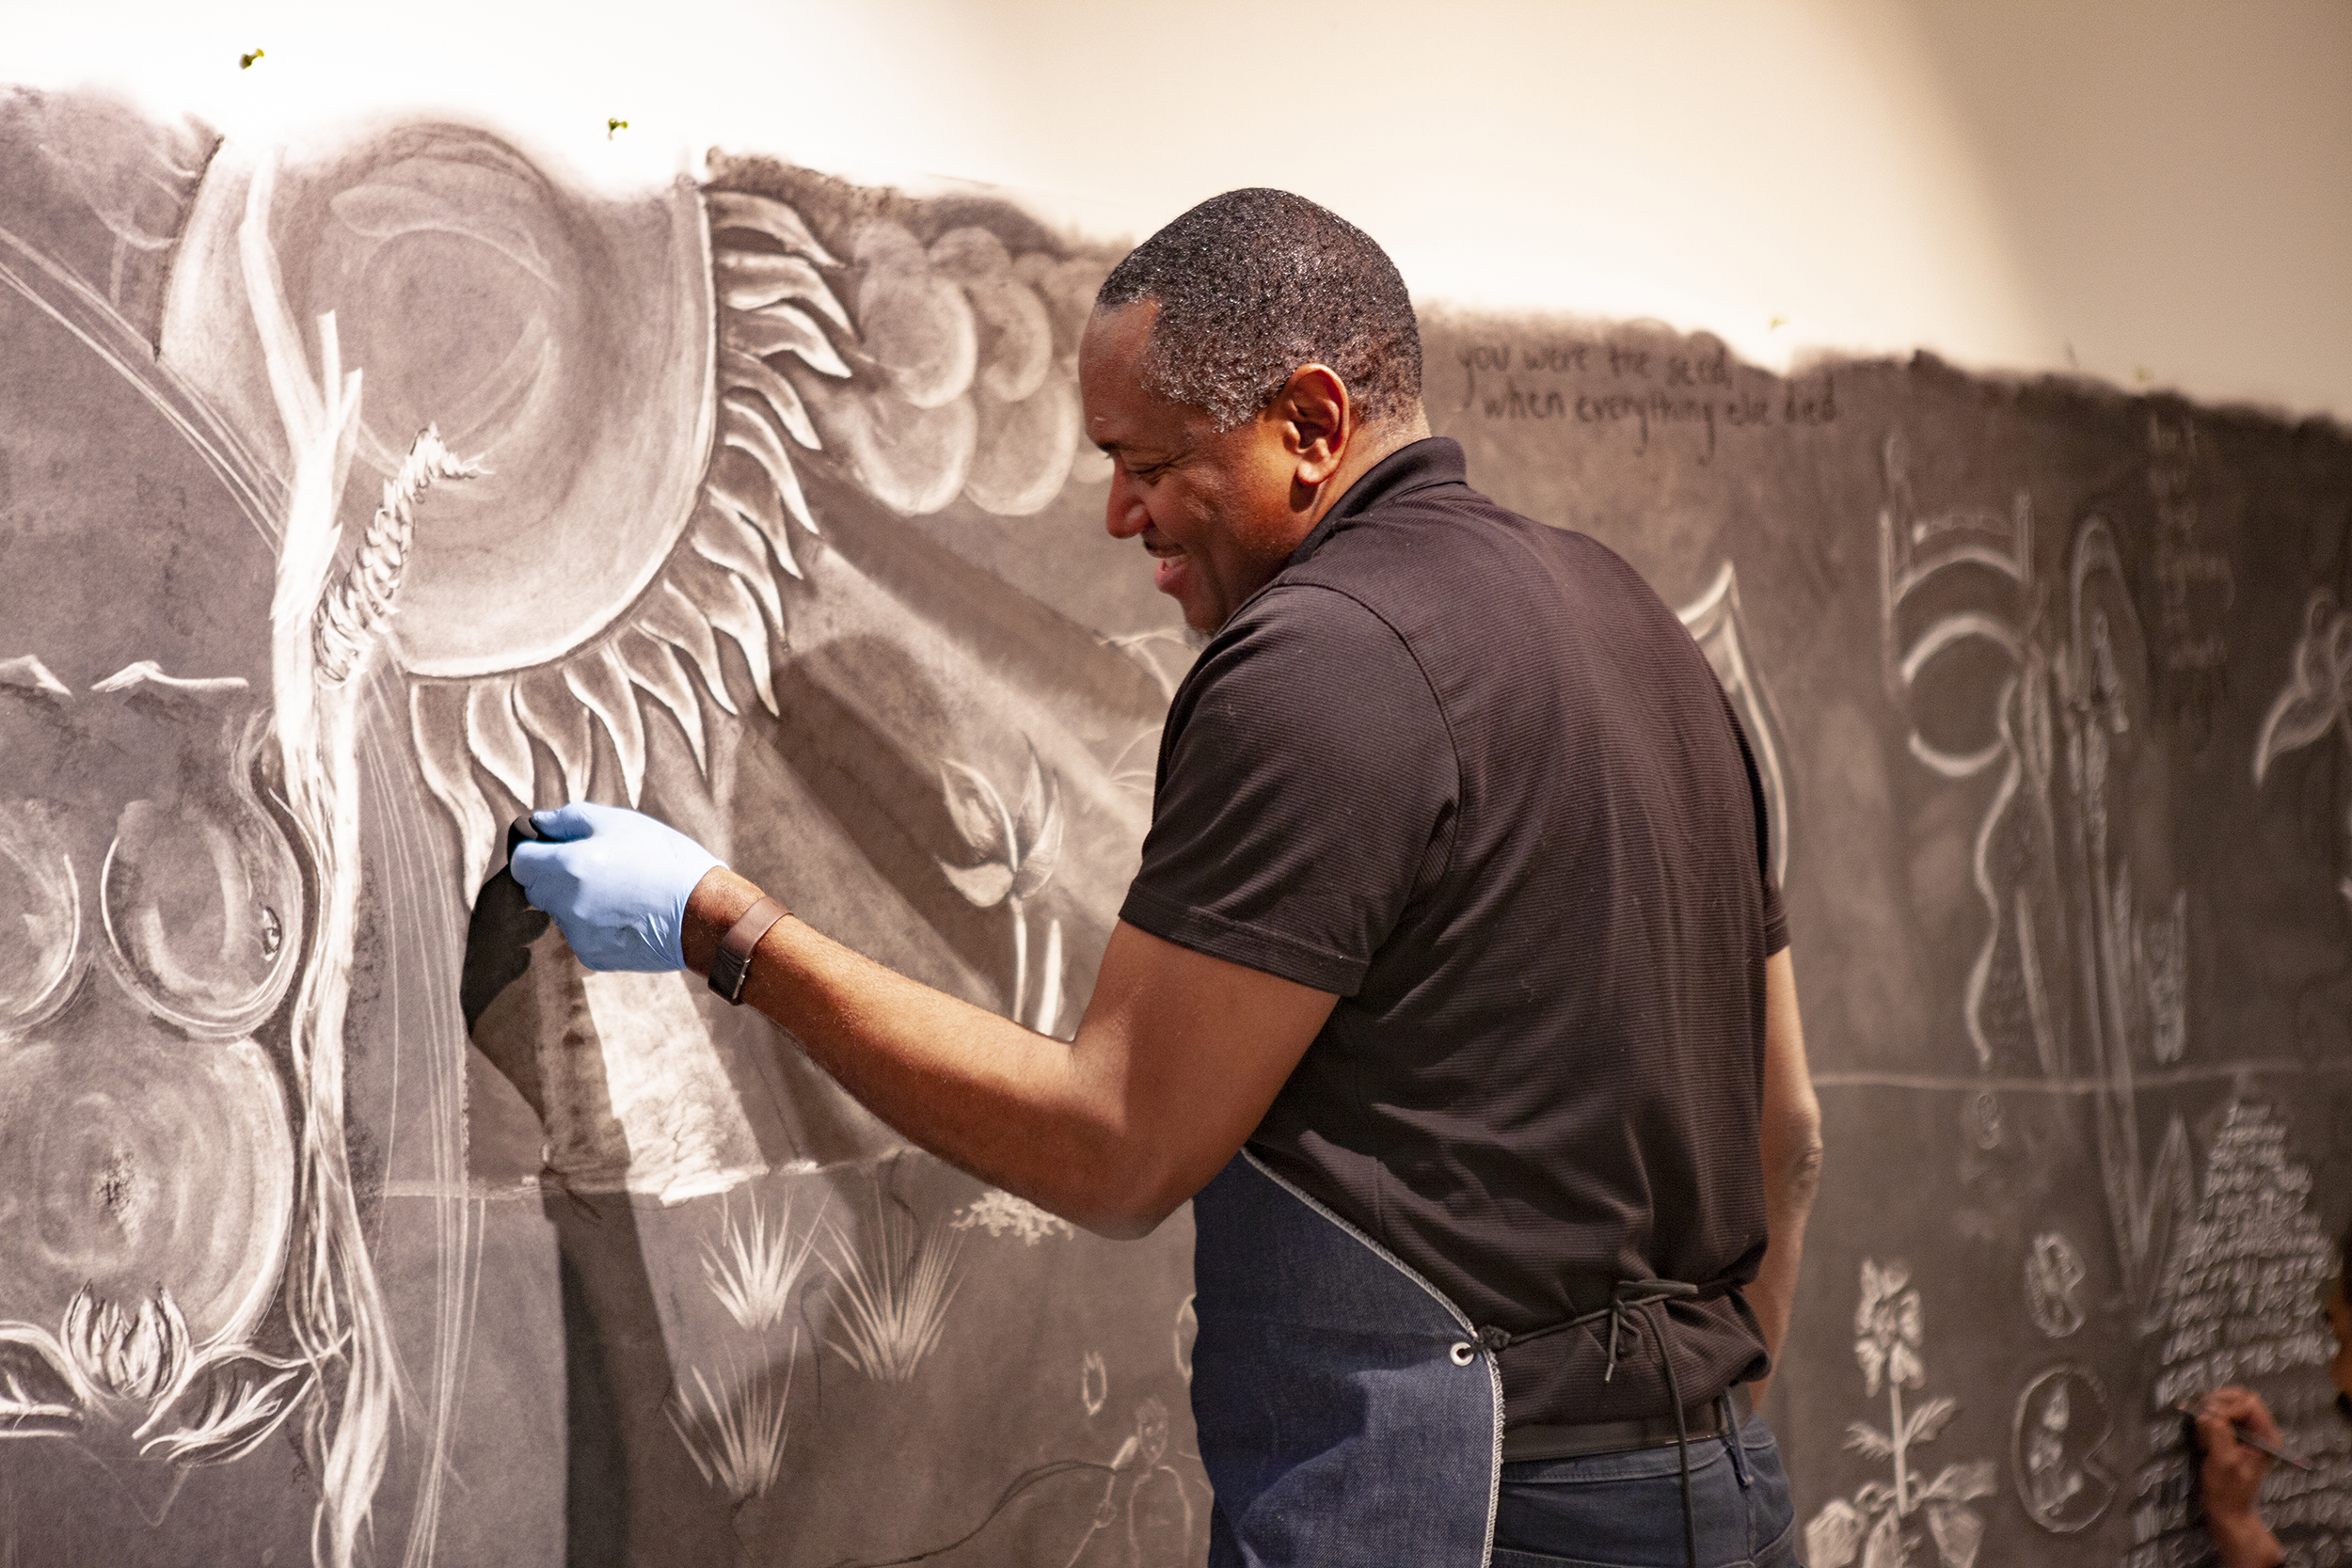 """Artist Steve Prince (pictured above) has helped Geneseo students channel their strife with the world through art with his """"Urban Garden"""" exhibit in the Kinetic Gallery. Prince also presented """"Sankofa: Hope of Renewal, the art of Steve Prince"""" in the Bertha V.B. Lederer Gallery (Udeshi Seniveratne / Photo editor)."""